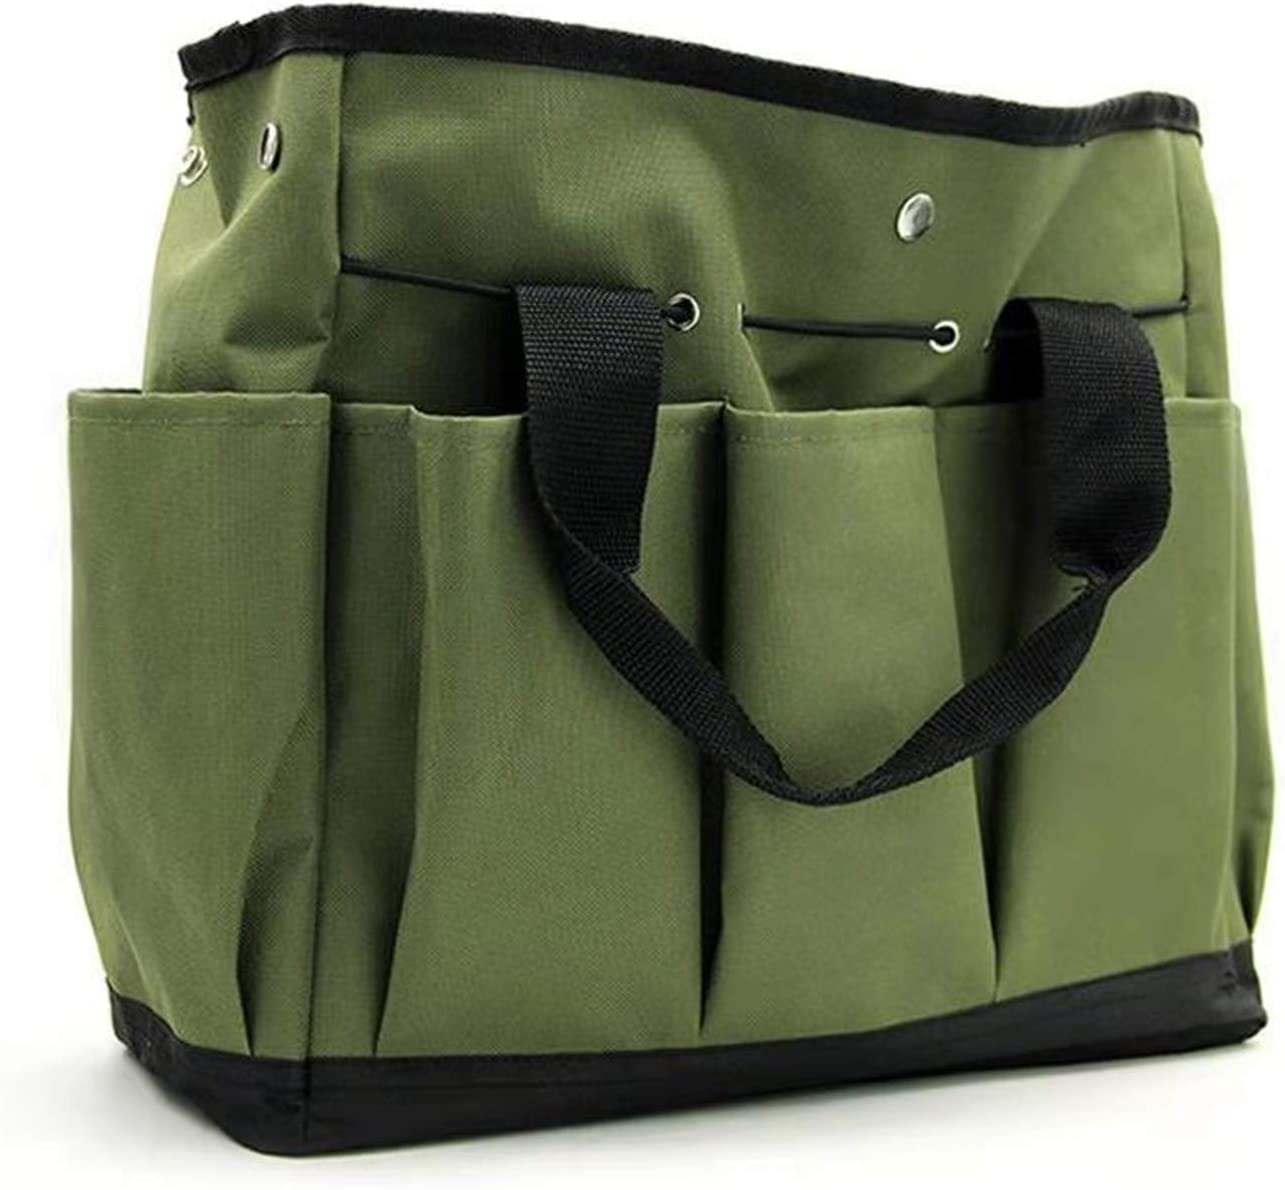 New color Garden Tool Bag Gardening Fashionable Organizer Tote T